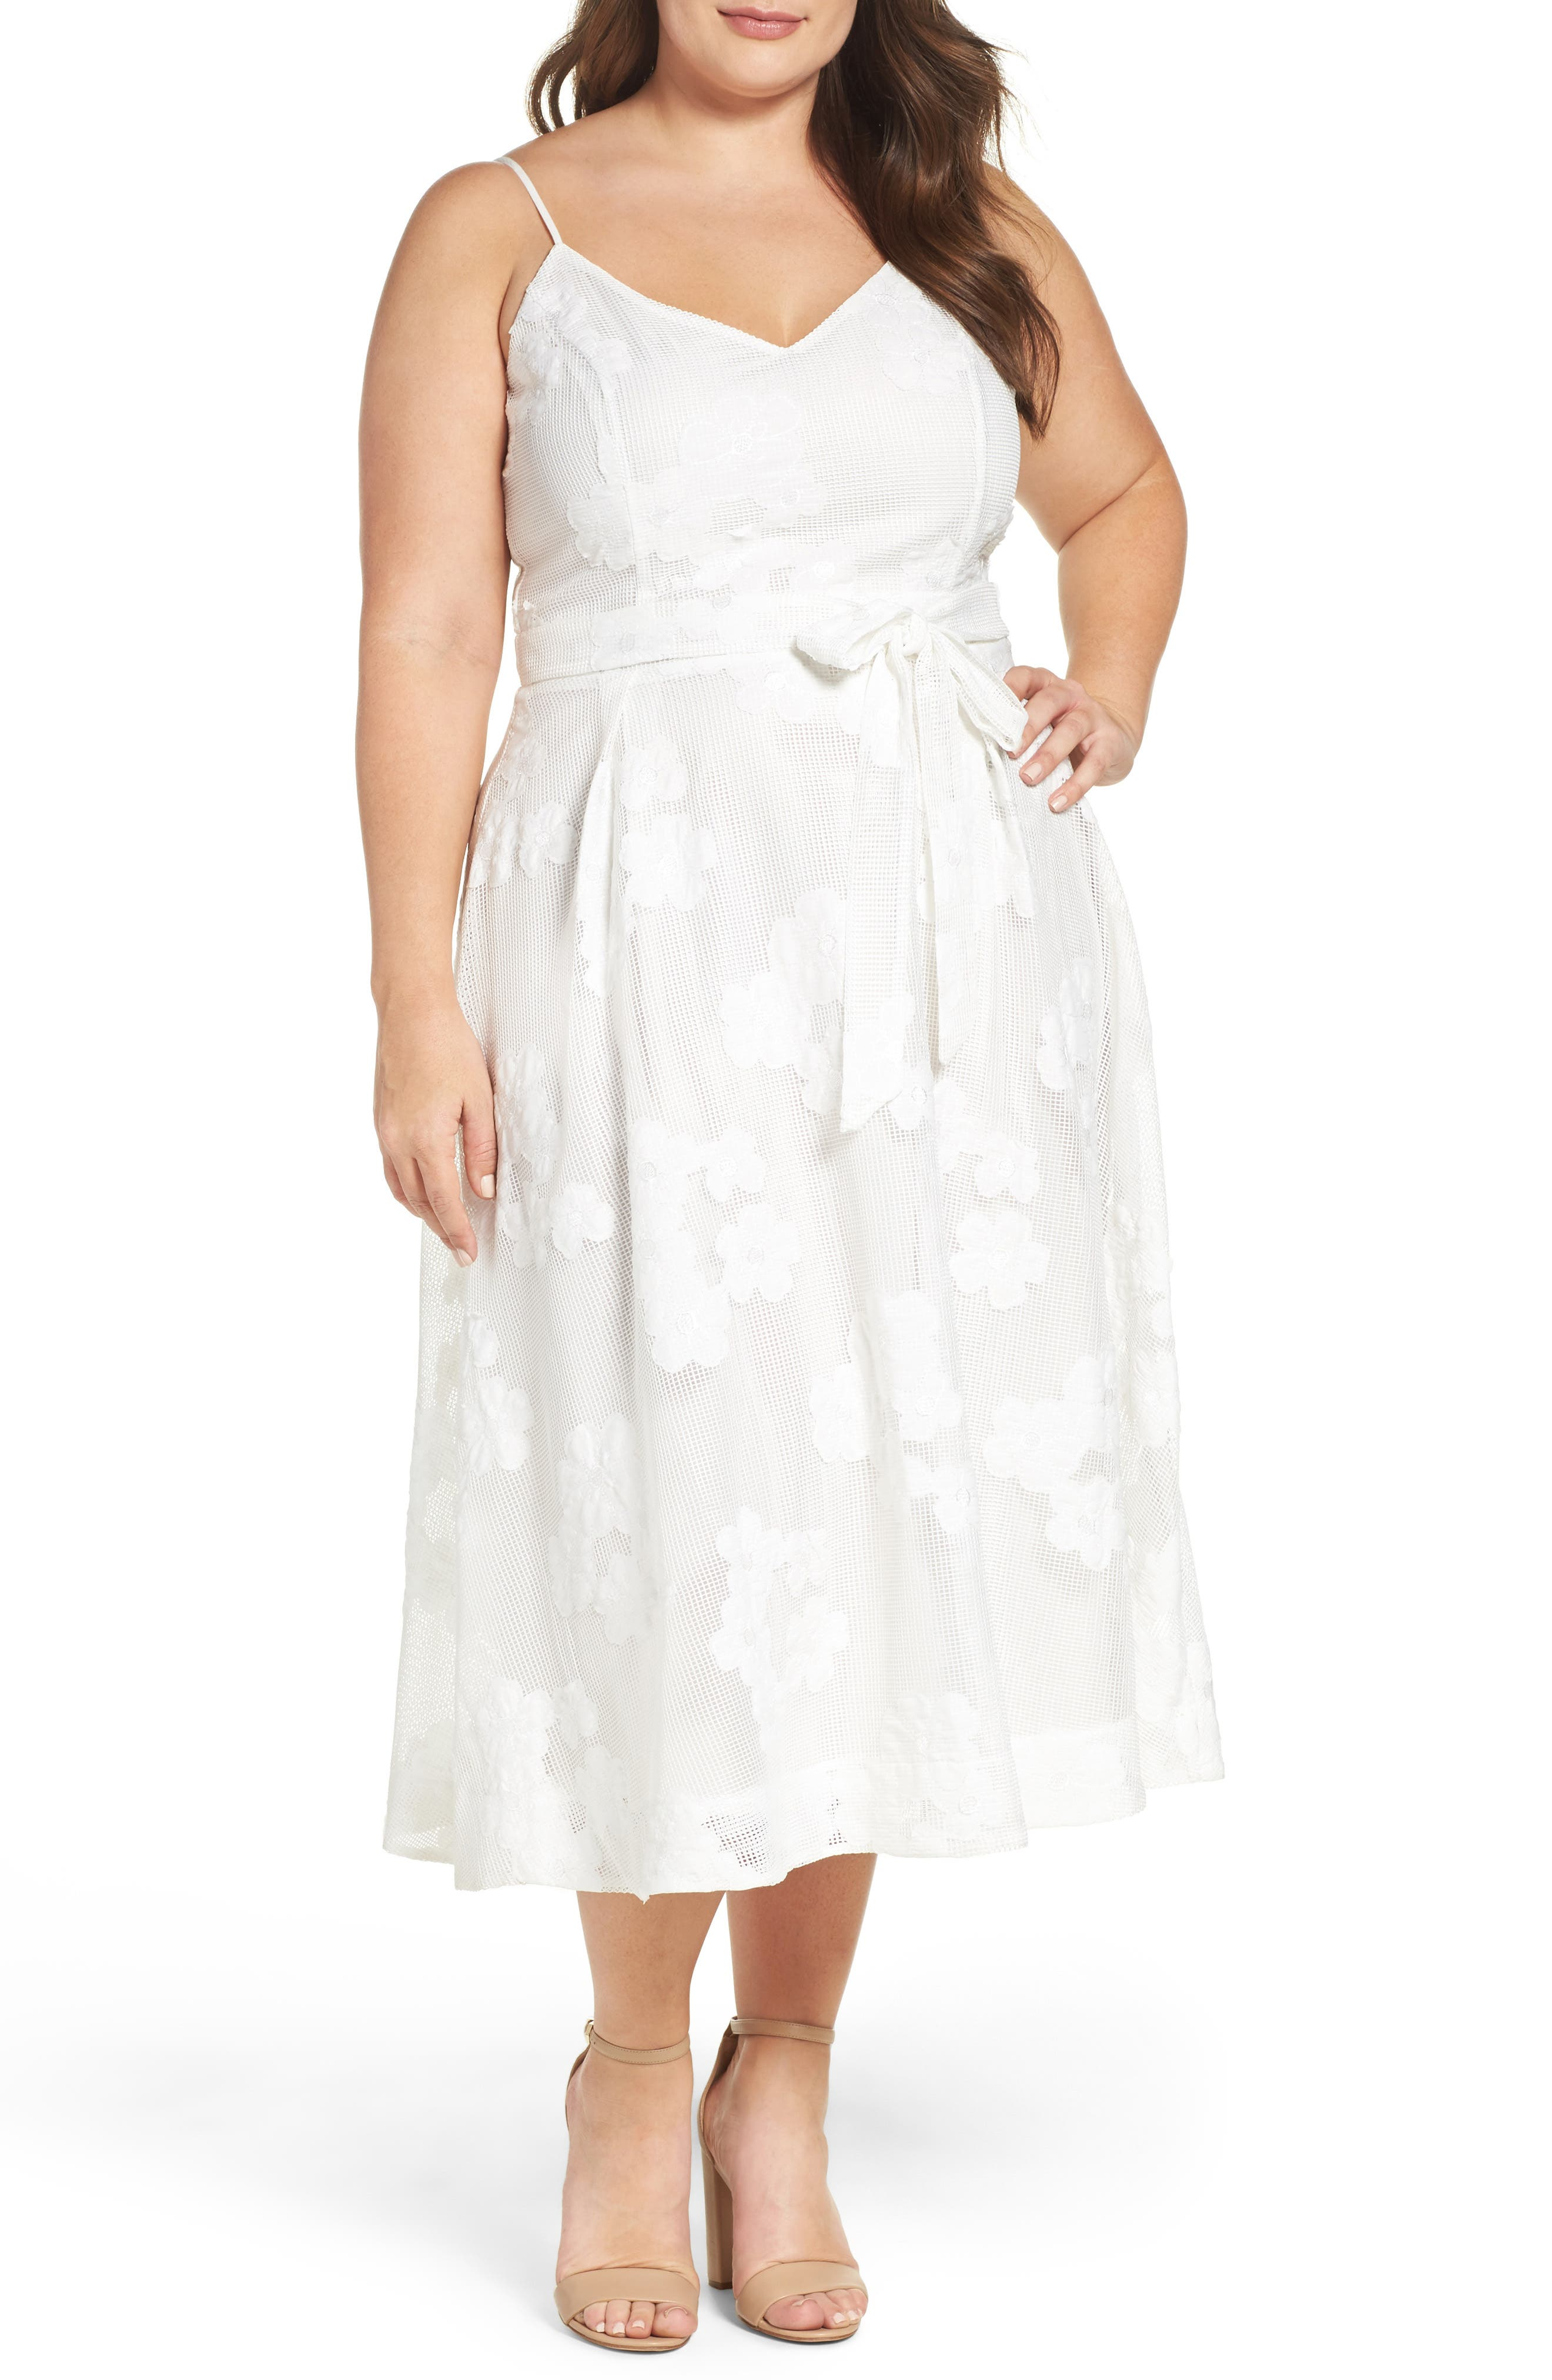 CITY CHIC Mesh Floral Sundress, Main, color, IVORY